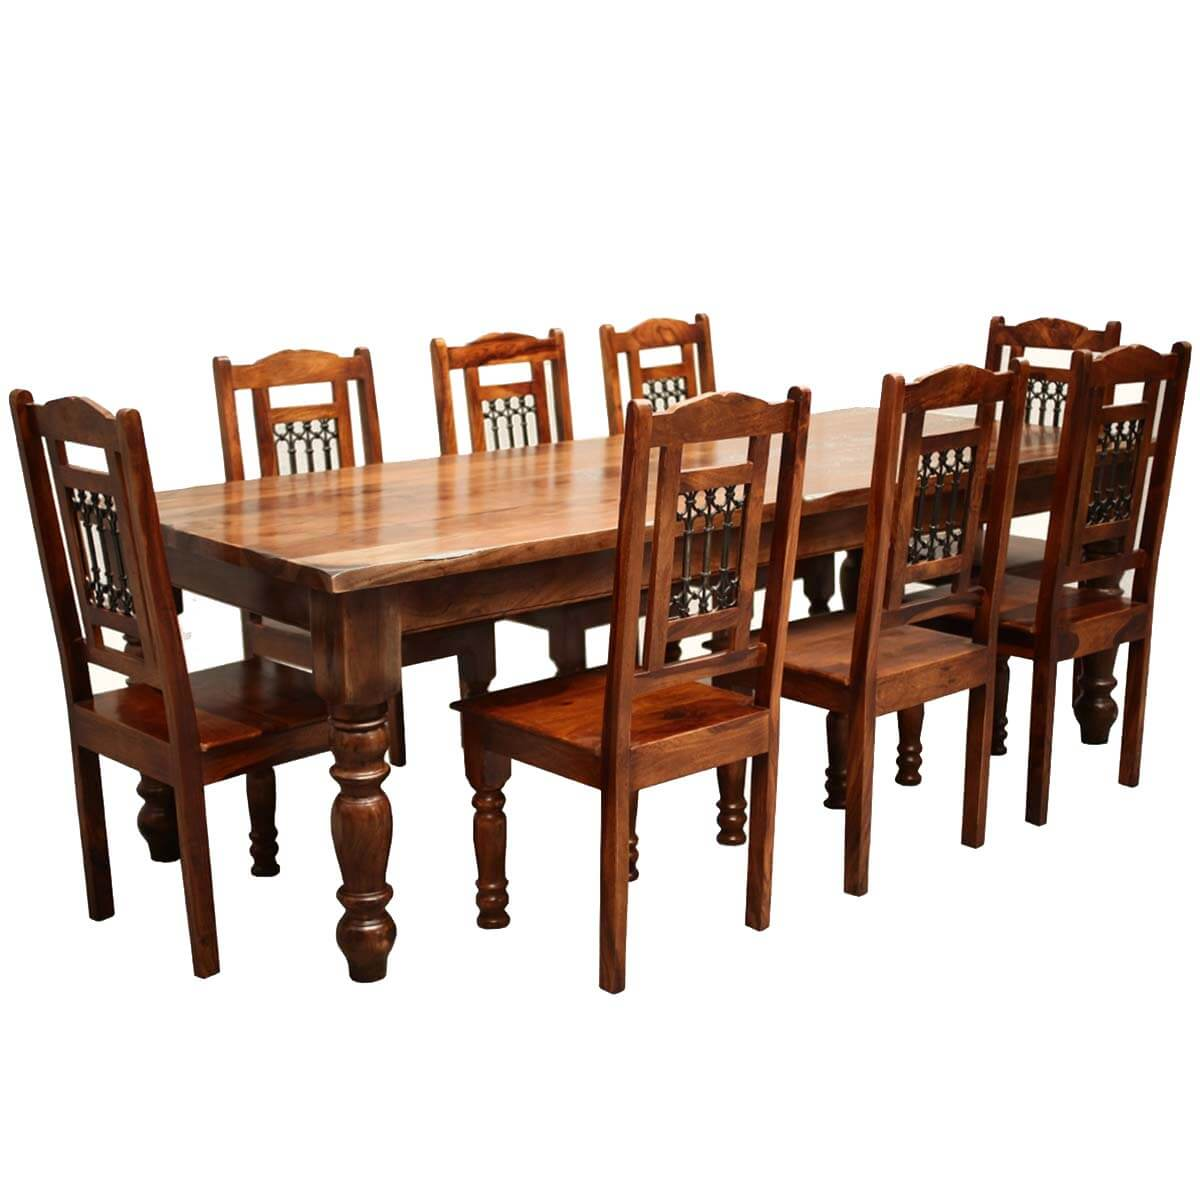 Rustic furniture solid wood large dining table 8 chair set for Best wooden dining tables and chairs